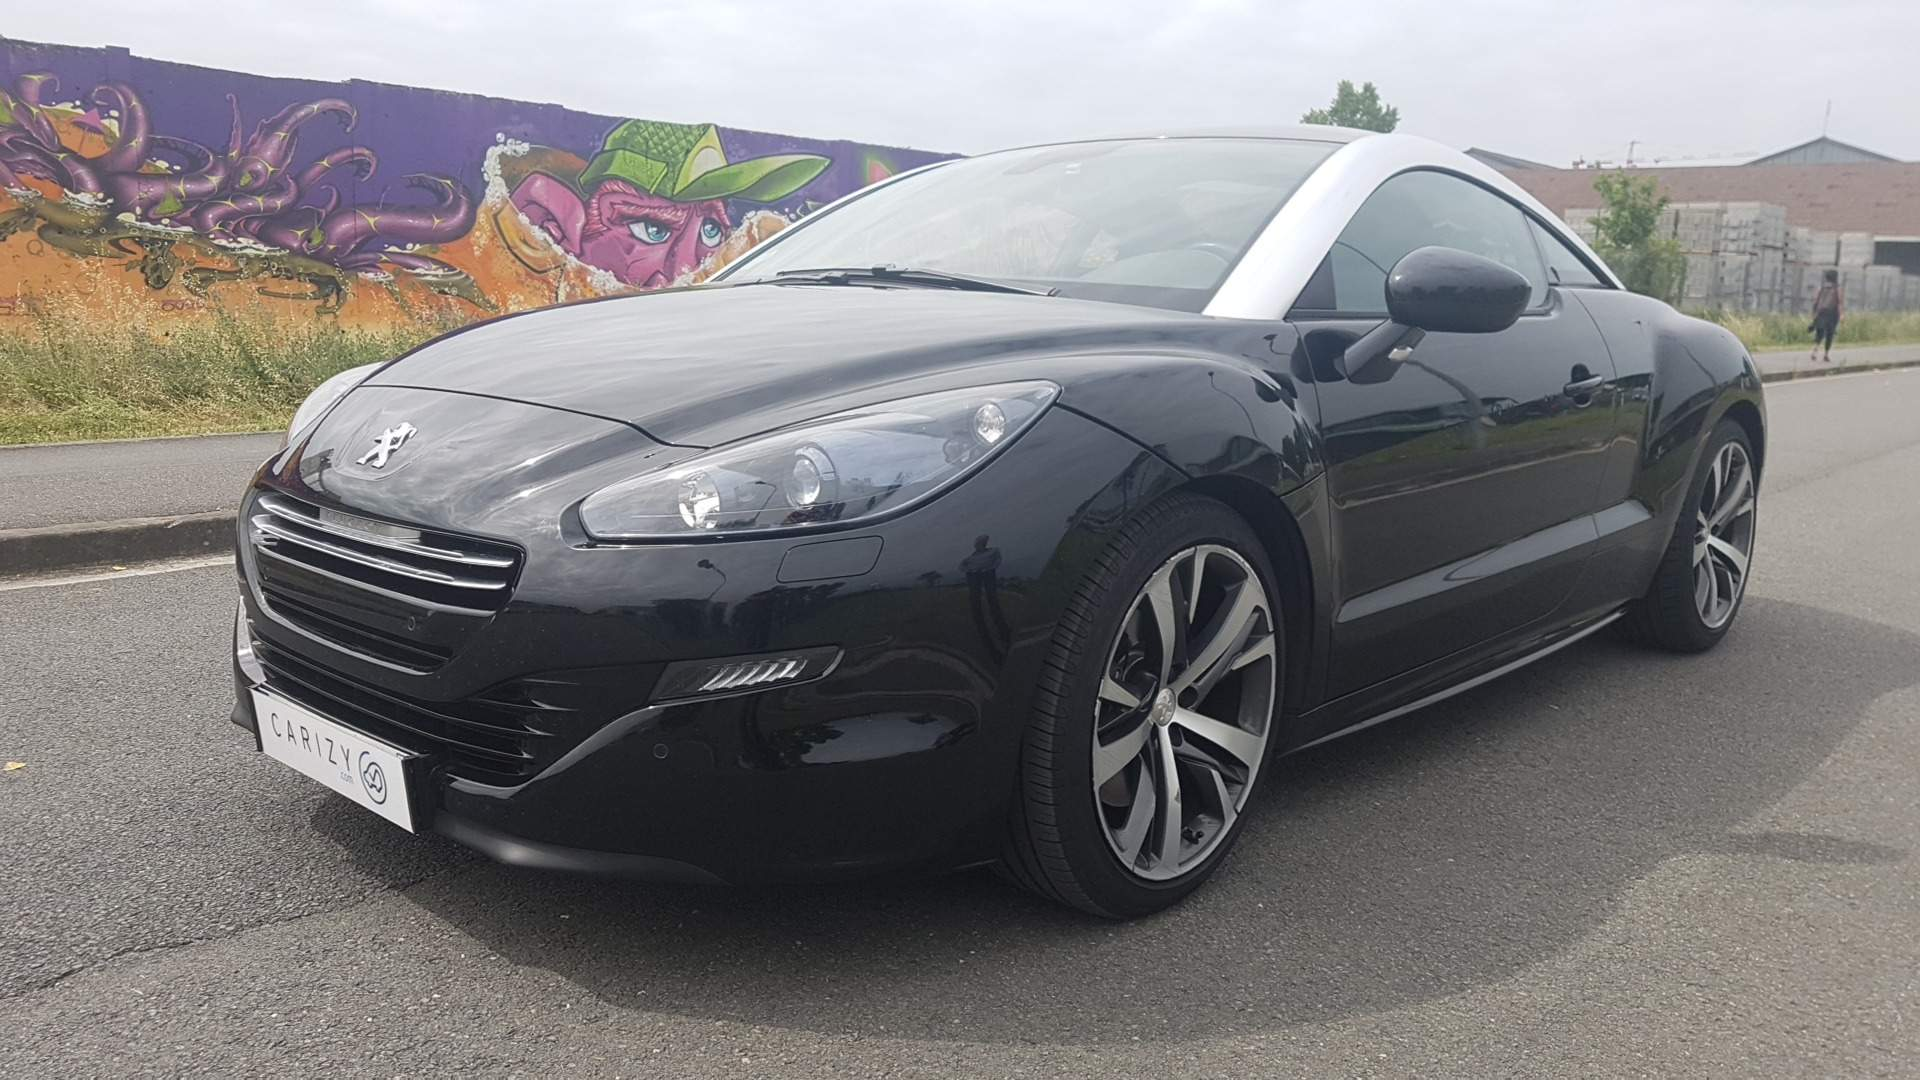 voiture peugeot rcz 2 0 hdi 160 occasion diesel 2013 76800 km 17325 paris paris. Black Bedroom Furniture Sets. Home Design Ideas